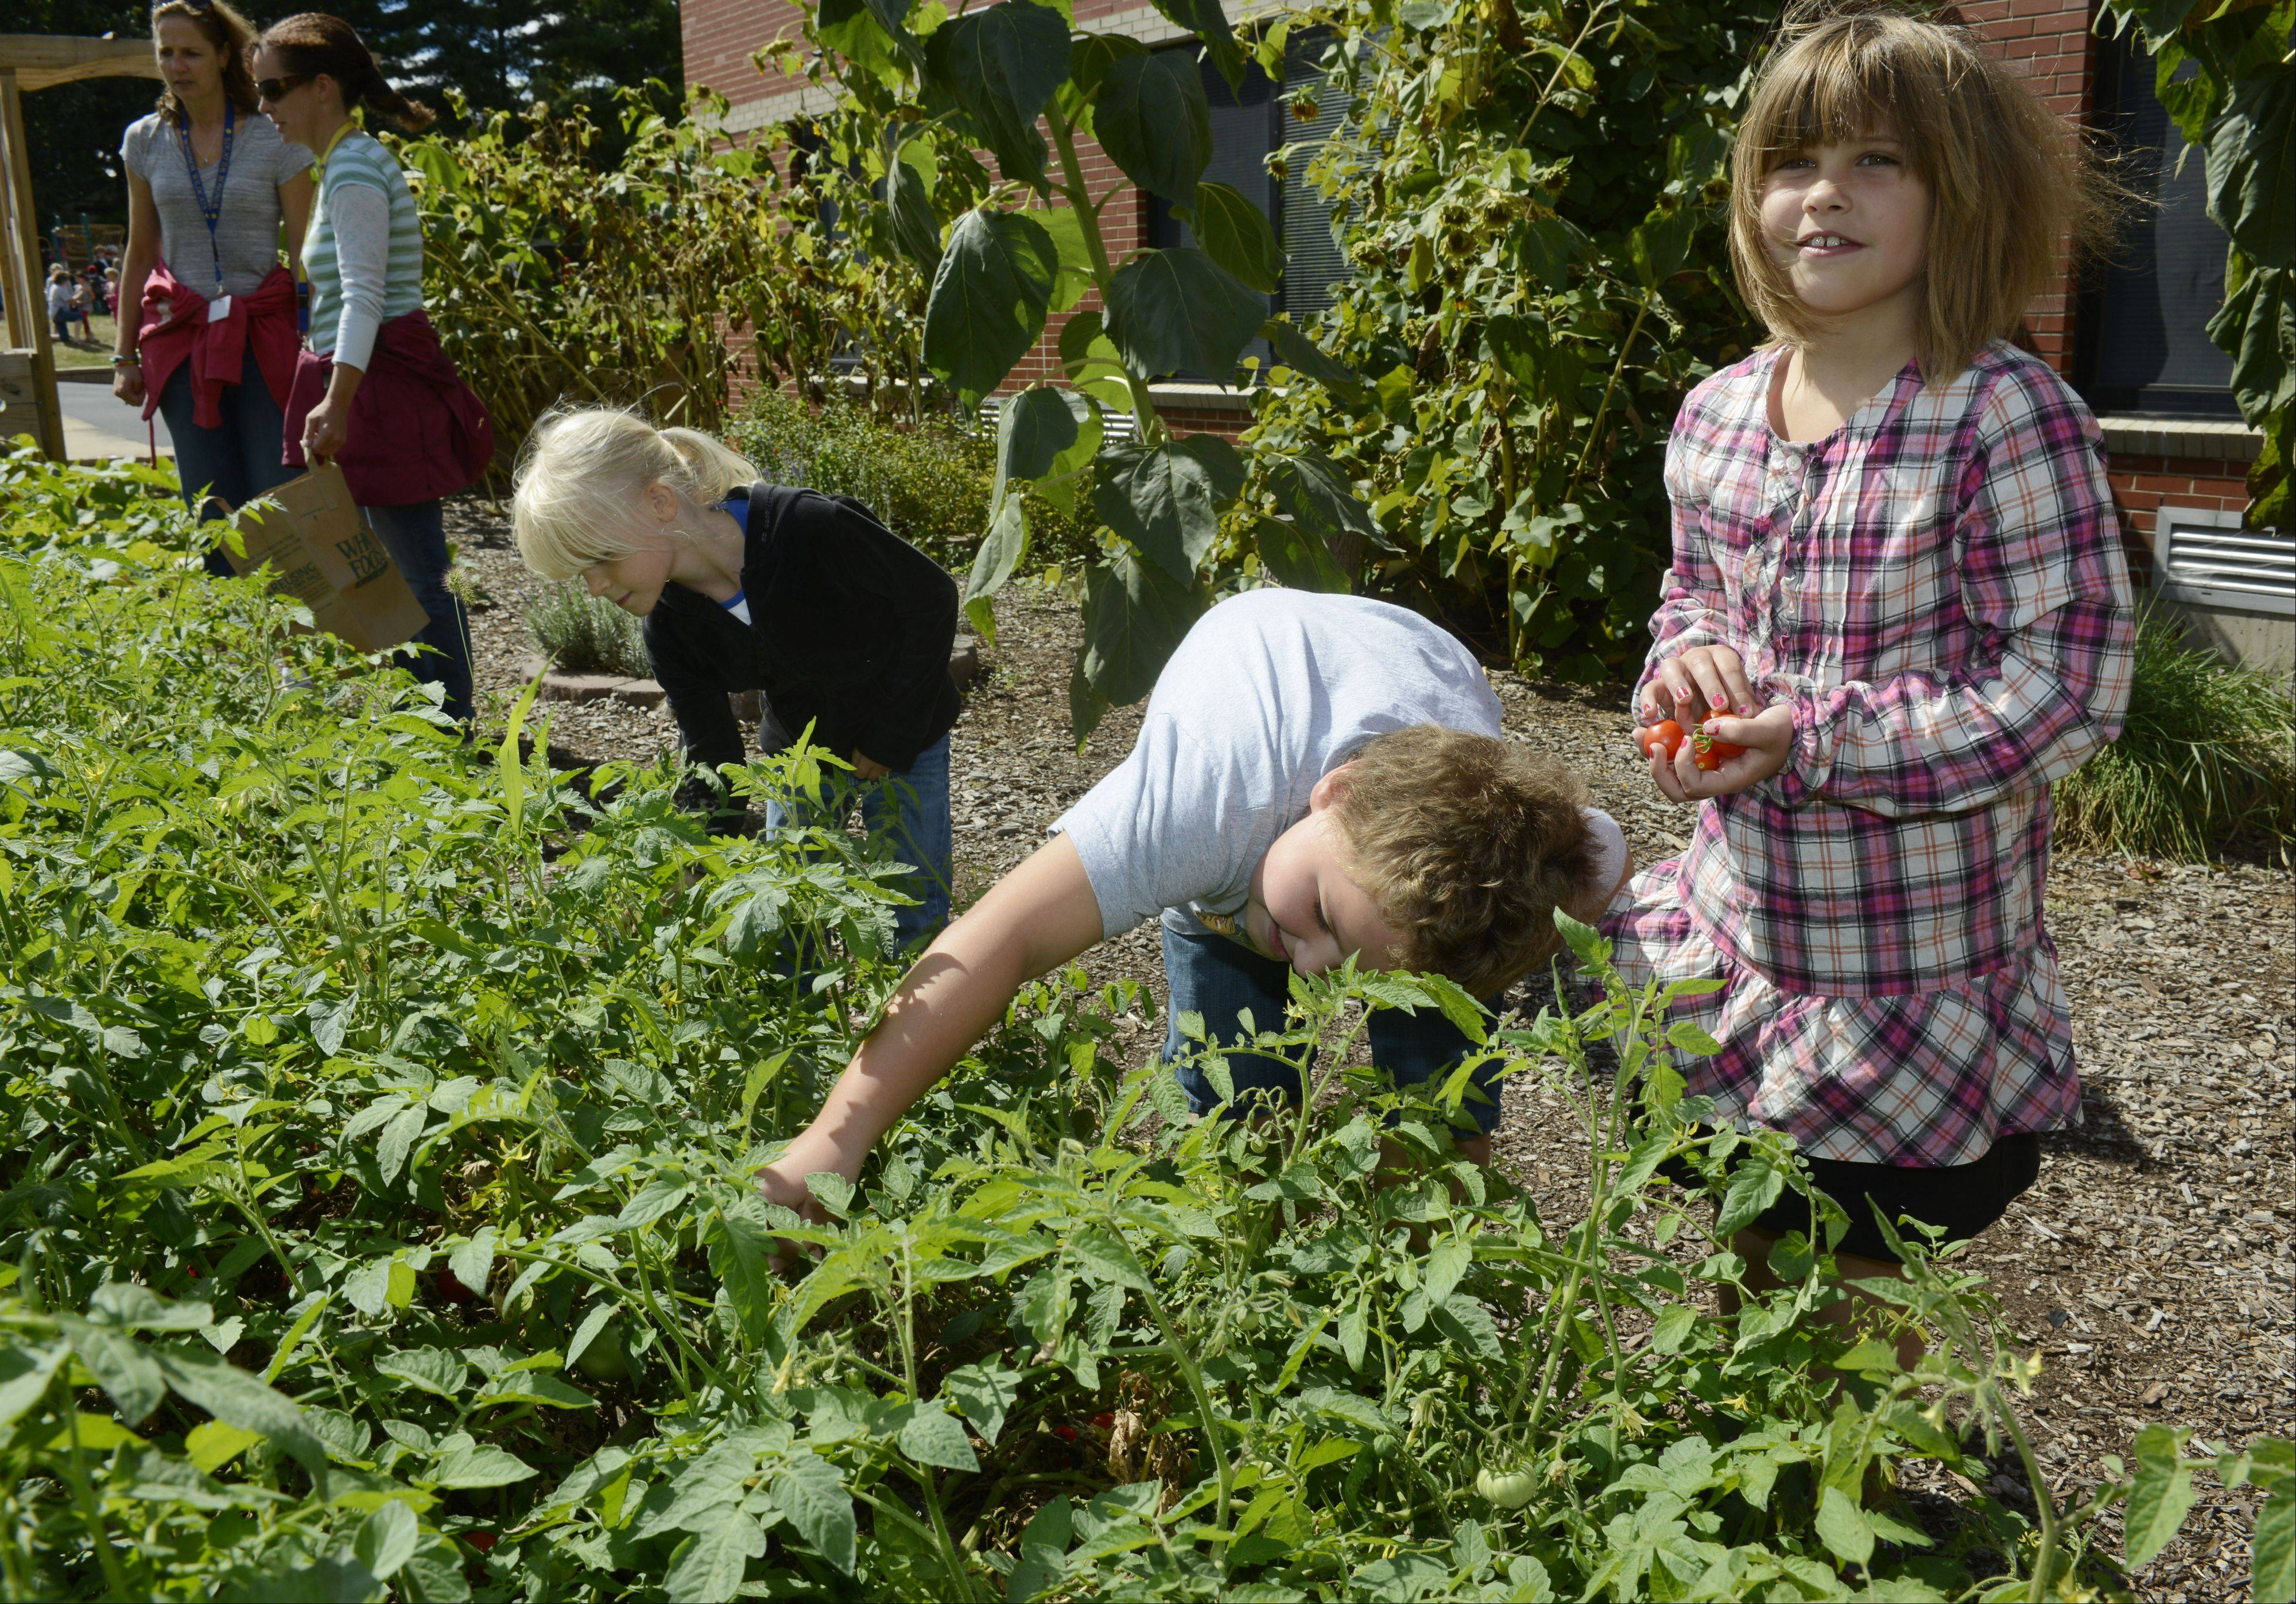 In September, students pick tomatoes from their south garden. From left, they are first grader Sophie Fransen, and second graders David Dabrowski and Katie Ruszczak.